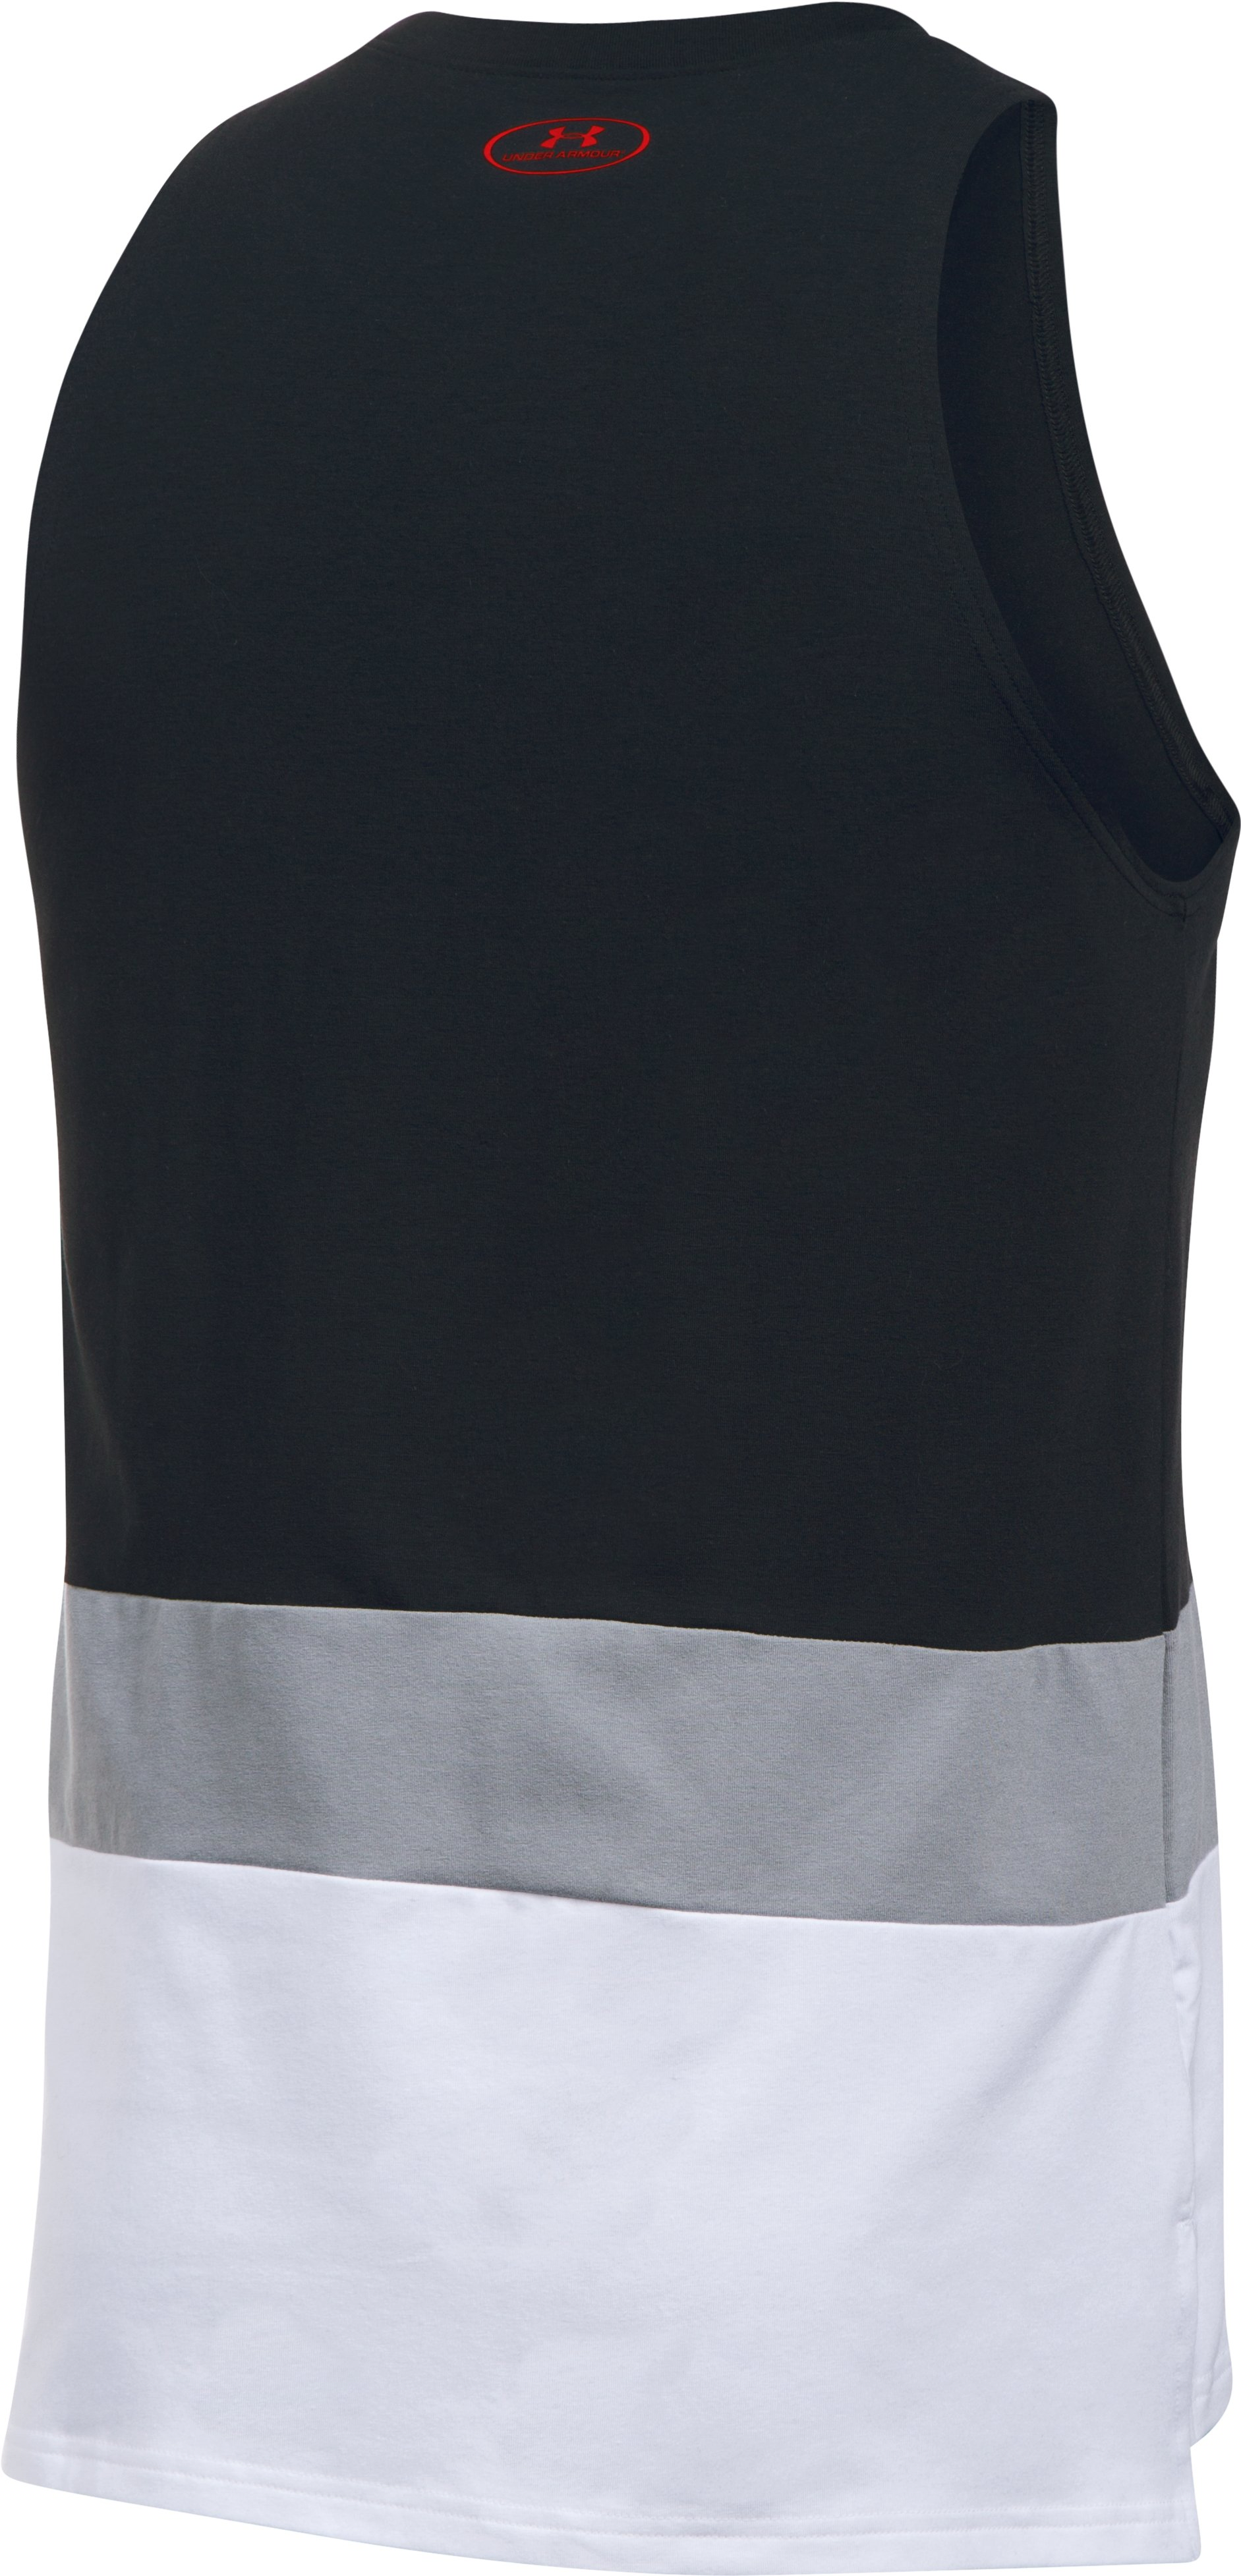 Men's SC30 Splash Tank, Black ,